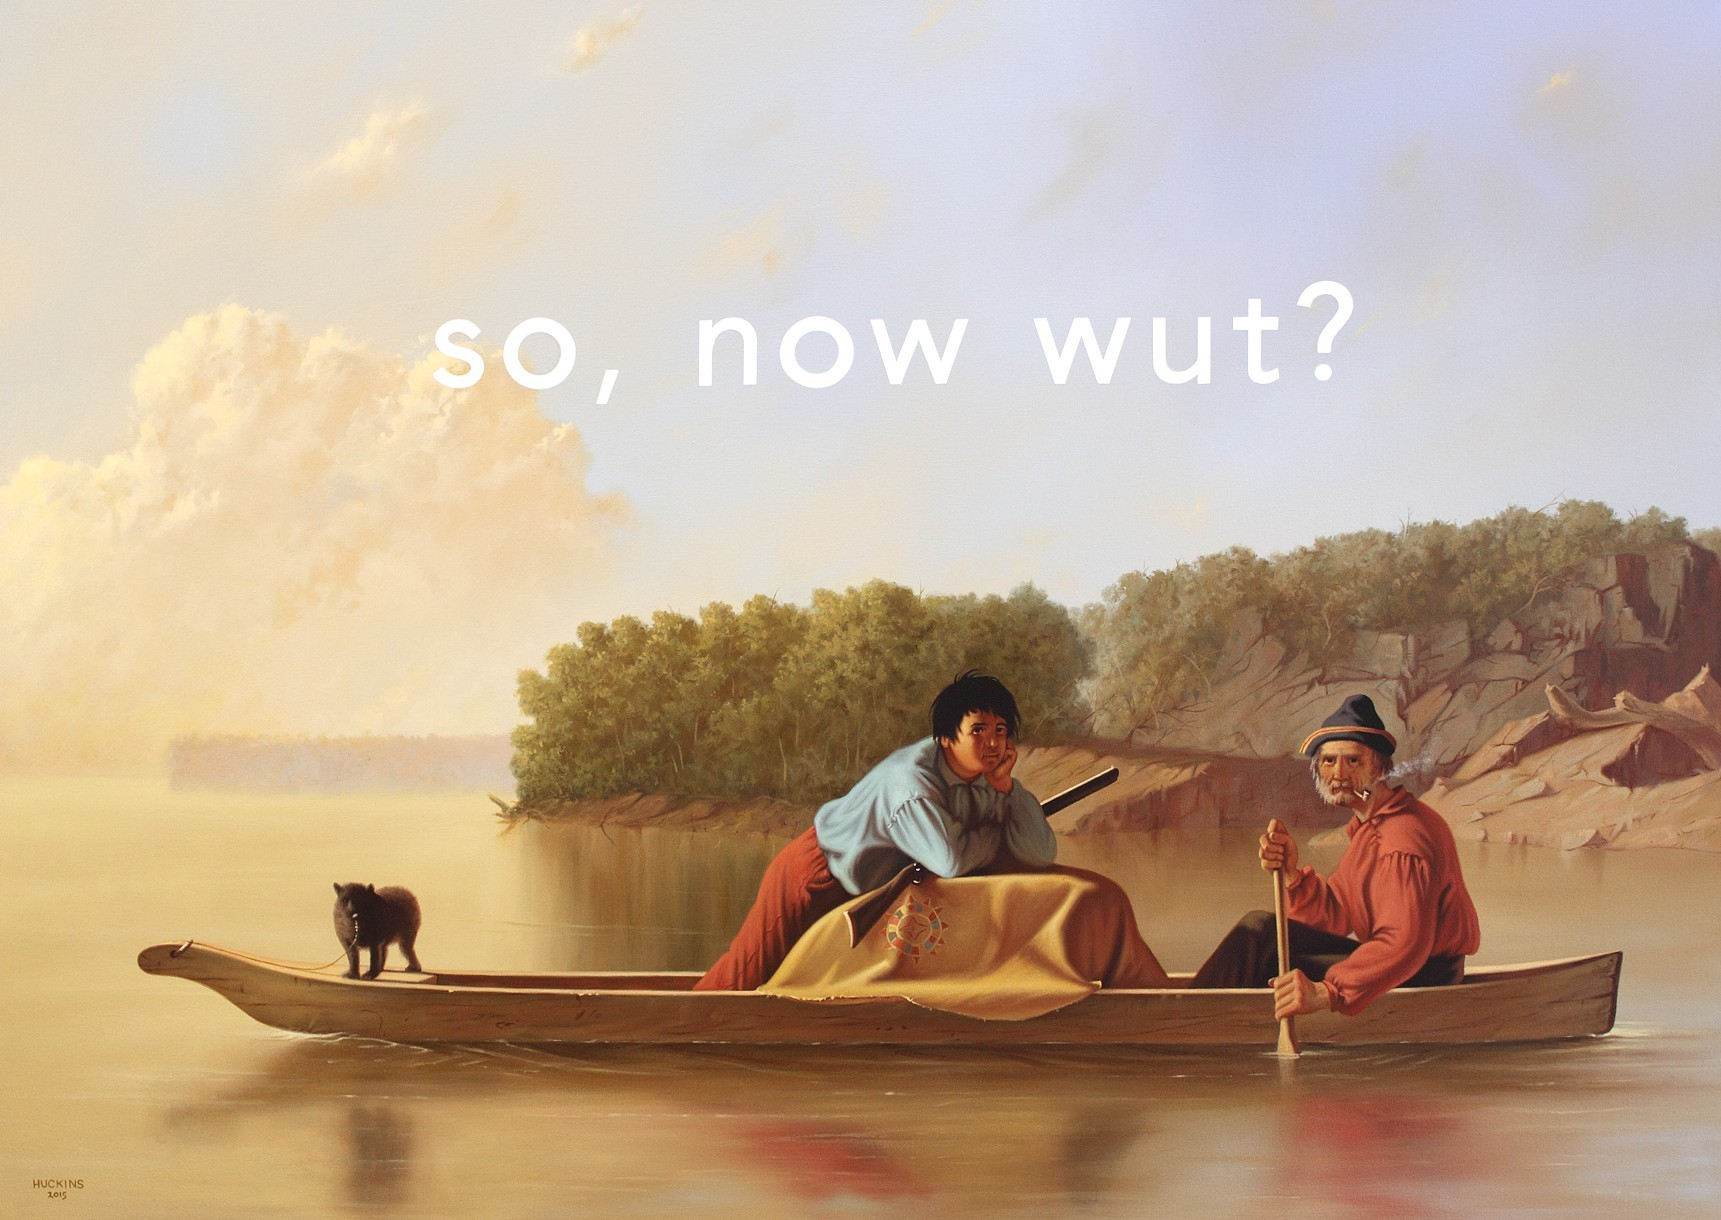 'The Trappers' Return. So, Now What?' - Shawn Huckins